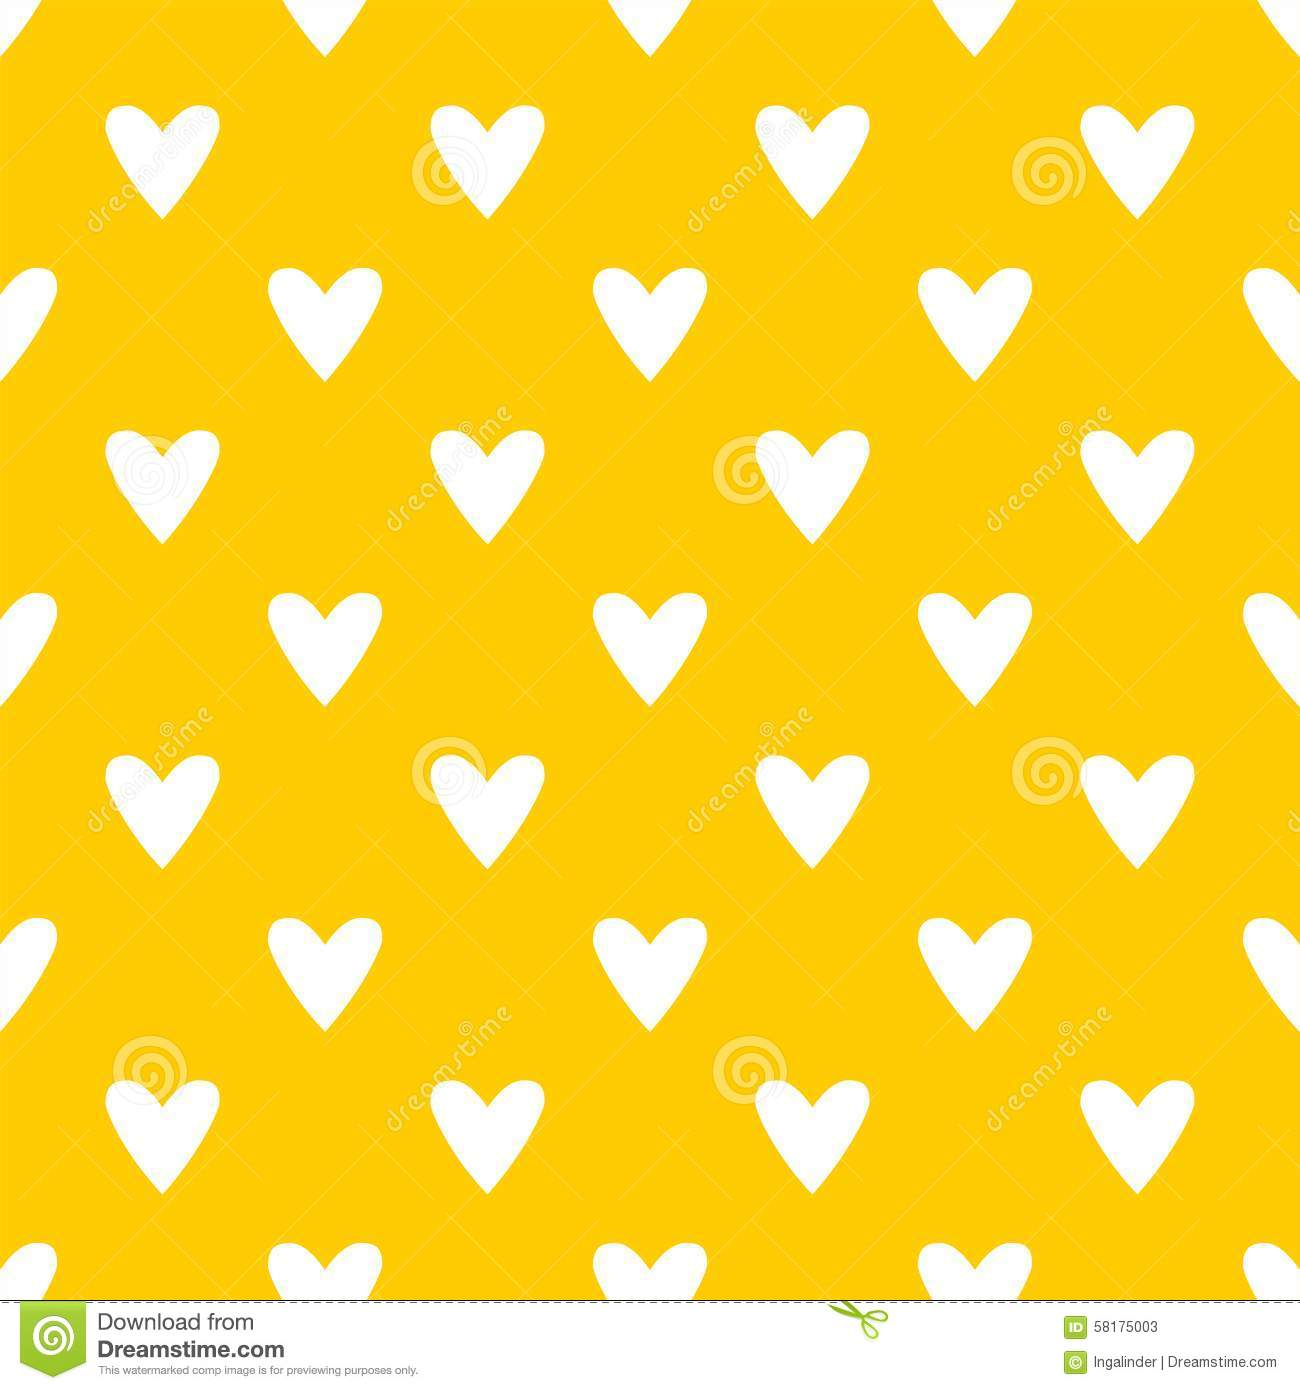 3d Love Red Heart Wallpaper Tile Cute Vector Pattern With White Hearts On Yellow